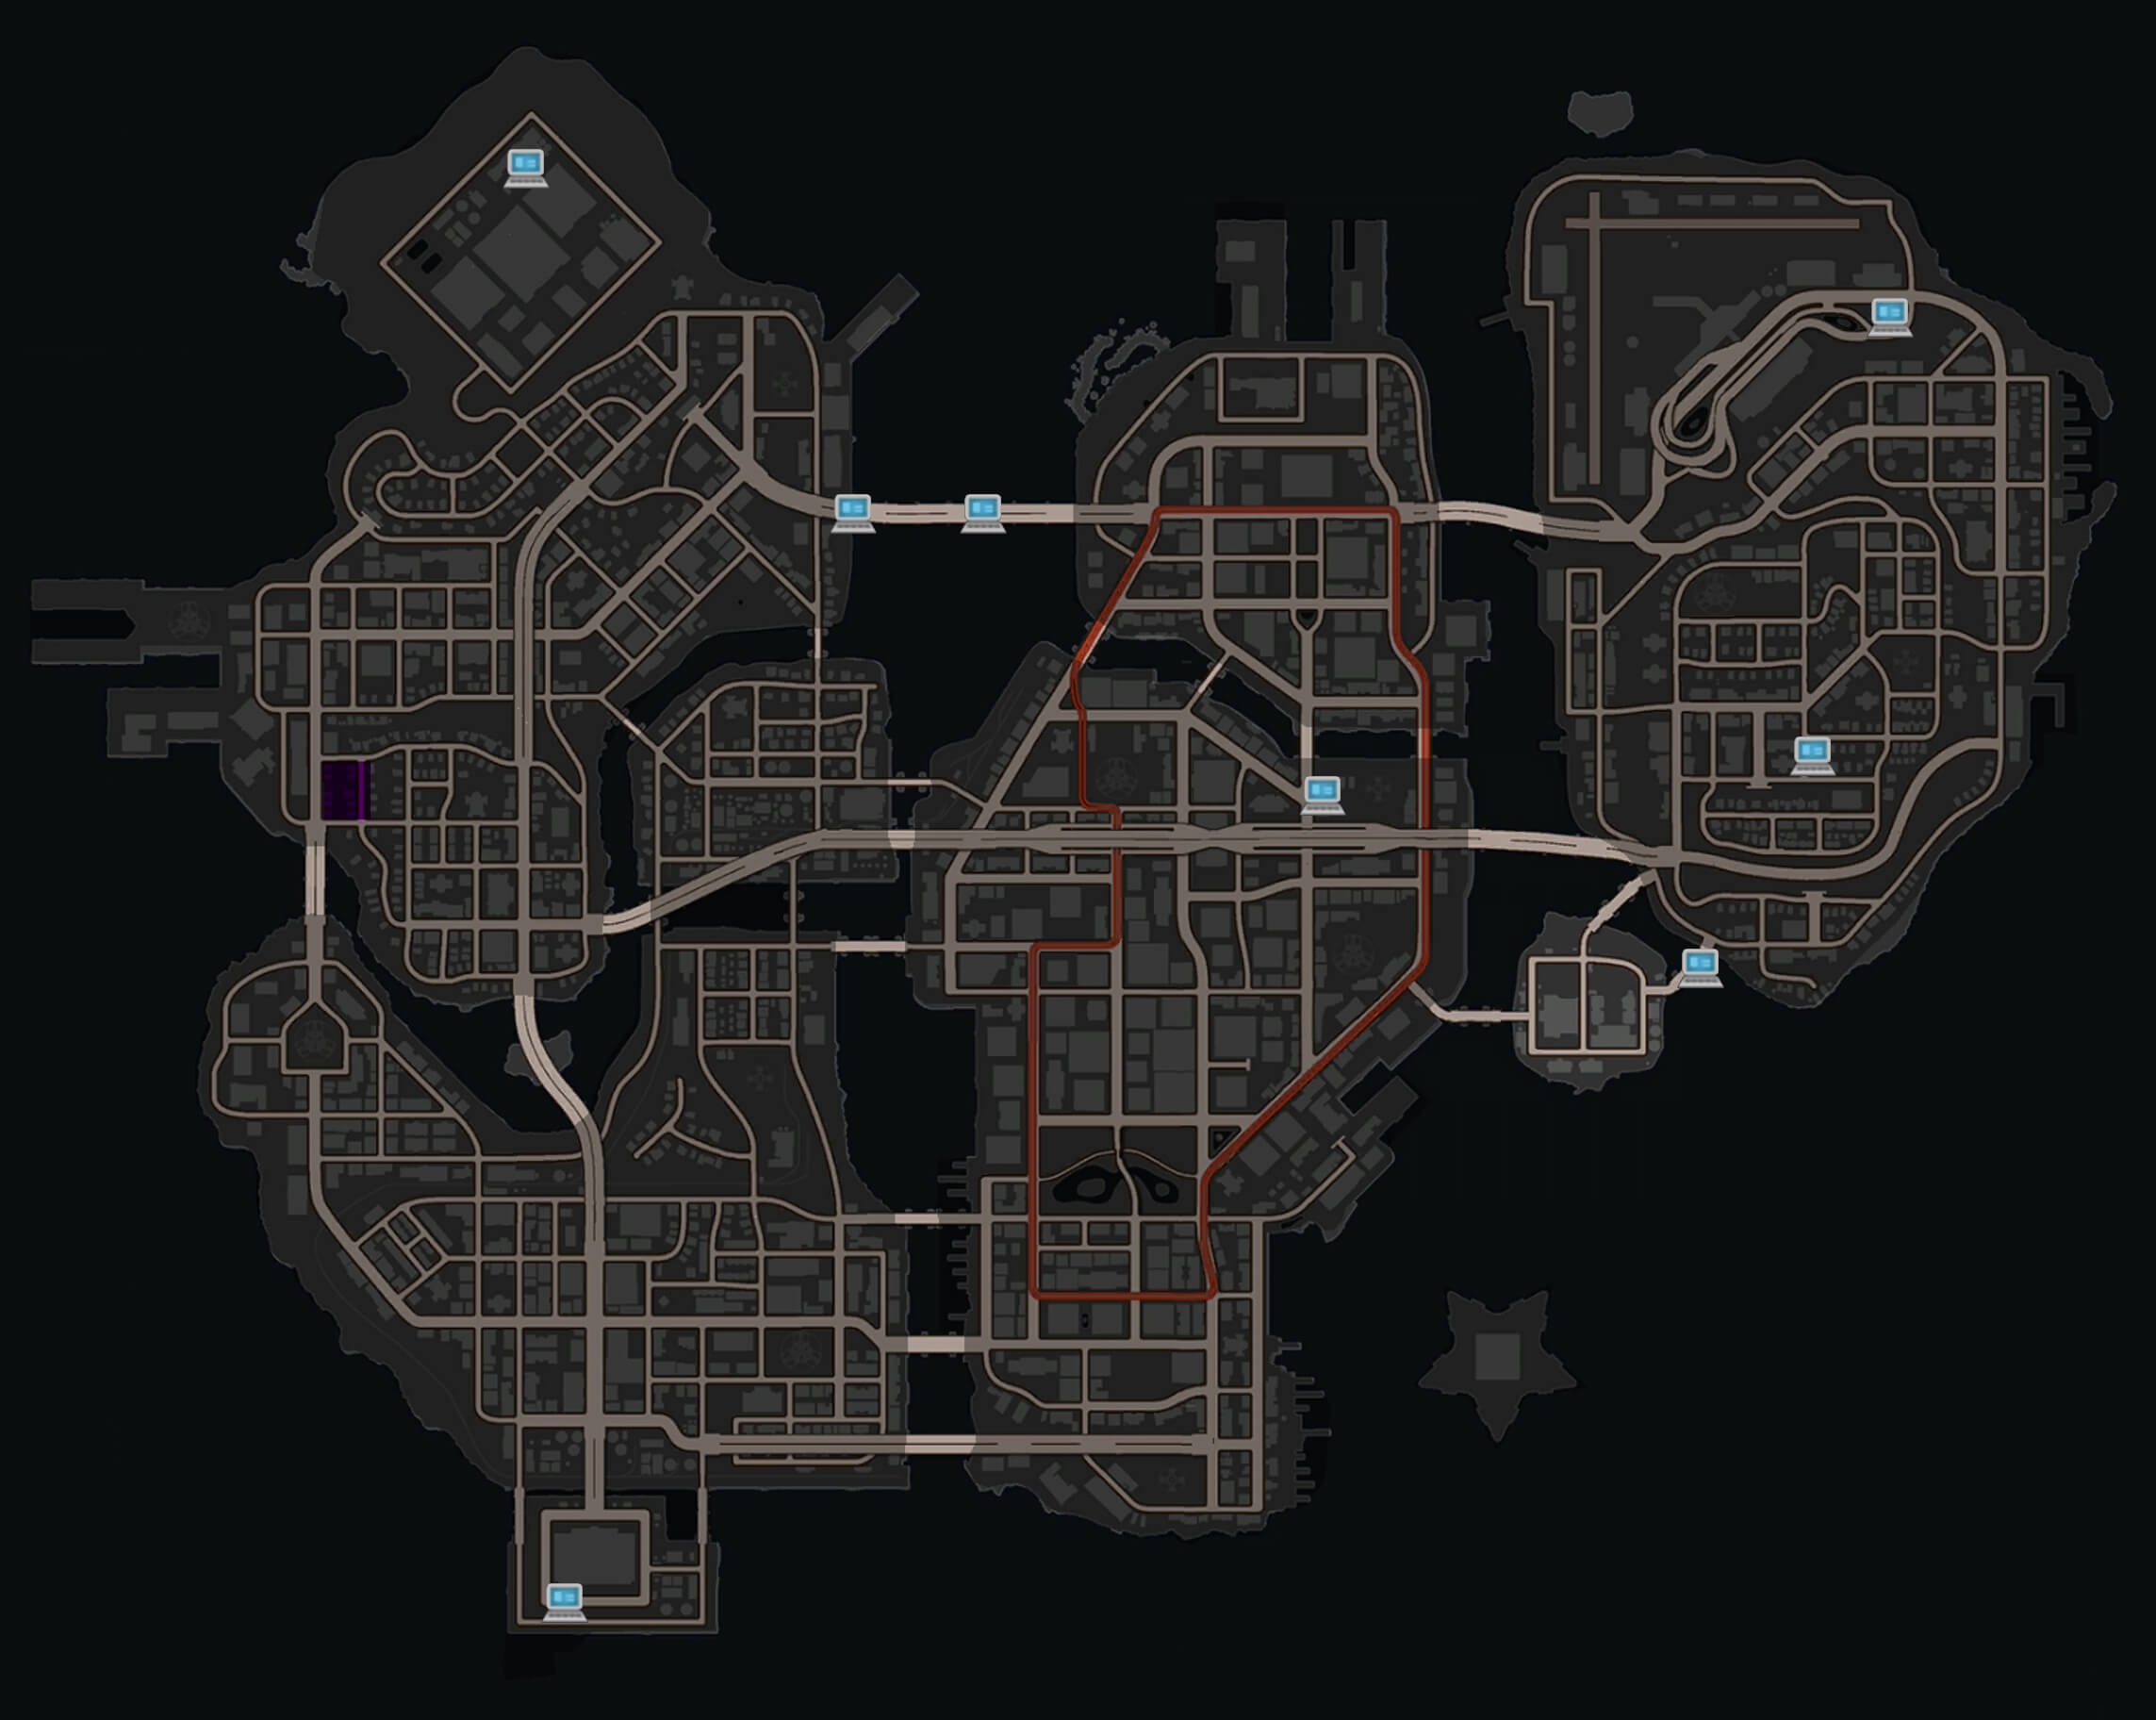 Saints Row 4 Text Adventure Pieces Locations - Video Games, Wikis ...